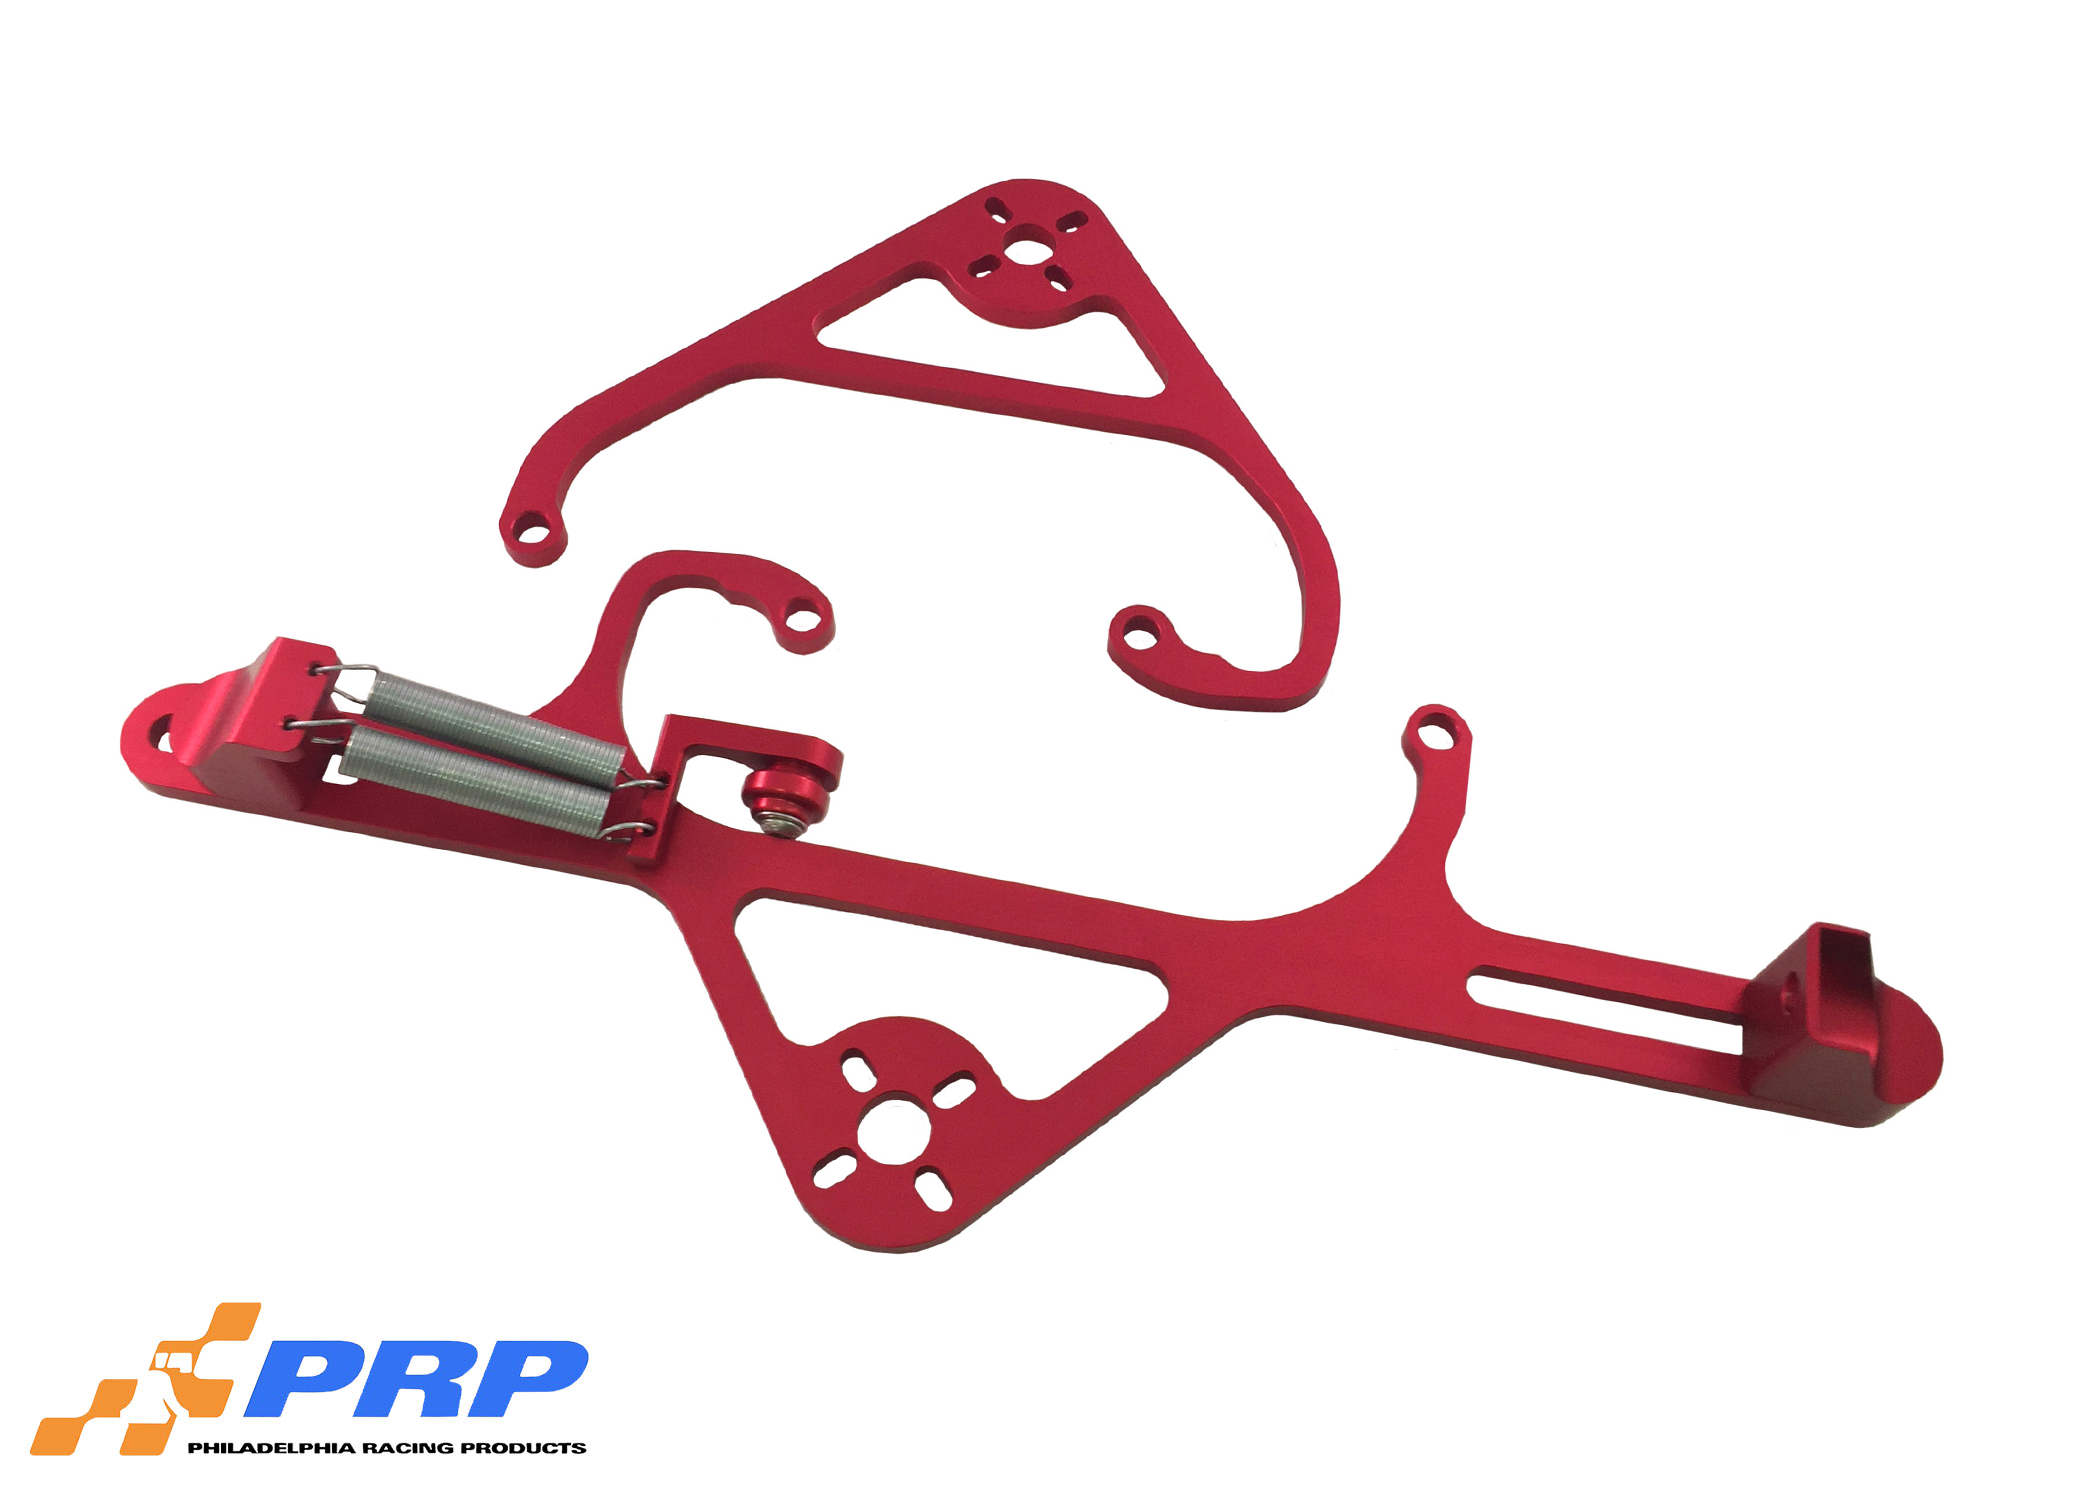 Red 4150 Nitrous Valve Mounting Brackets with Throttle Bracket made by PRP Racing Products